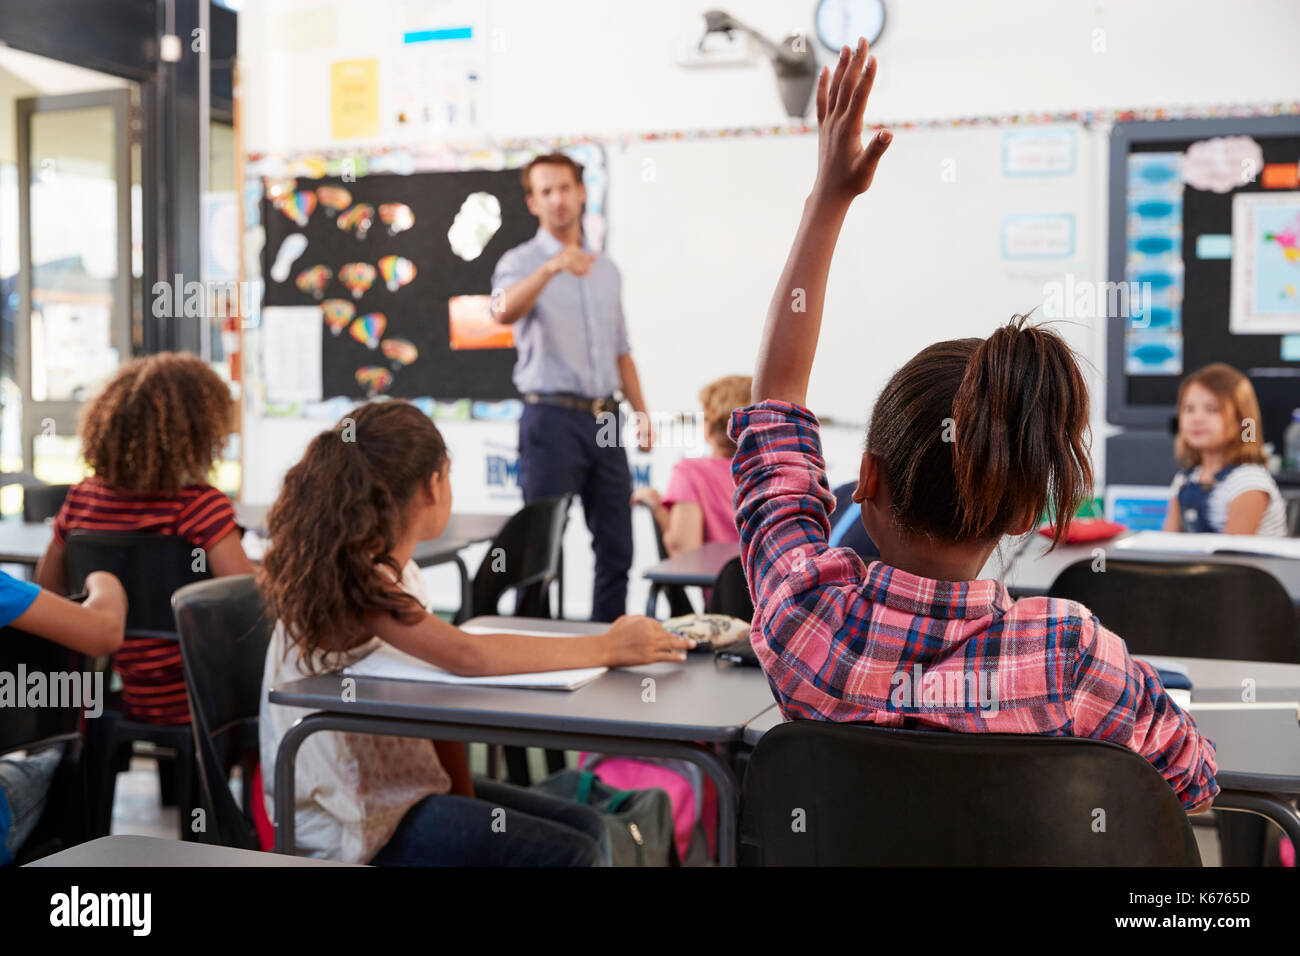 Teacher pointing to elementary school student in class - Stock Image